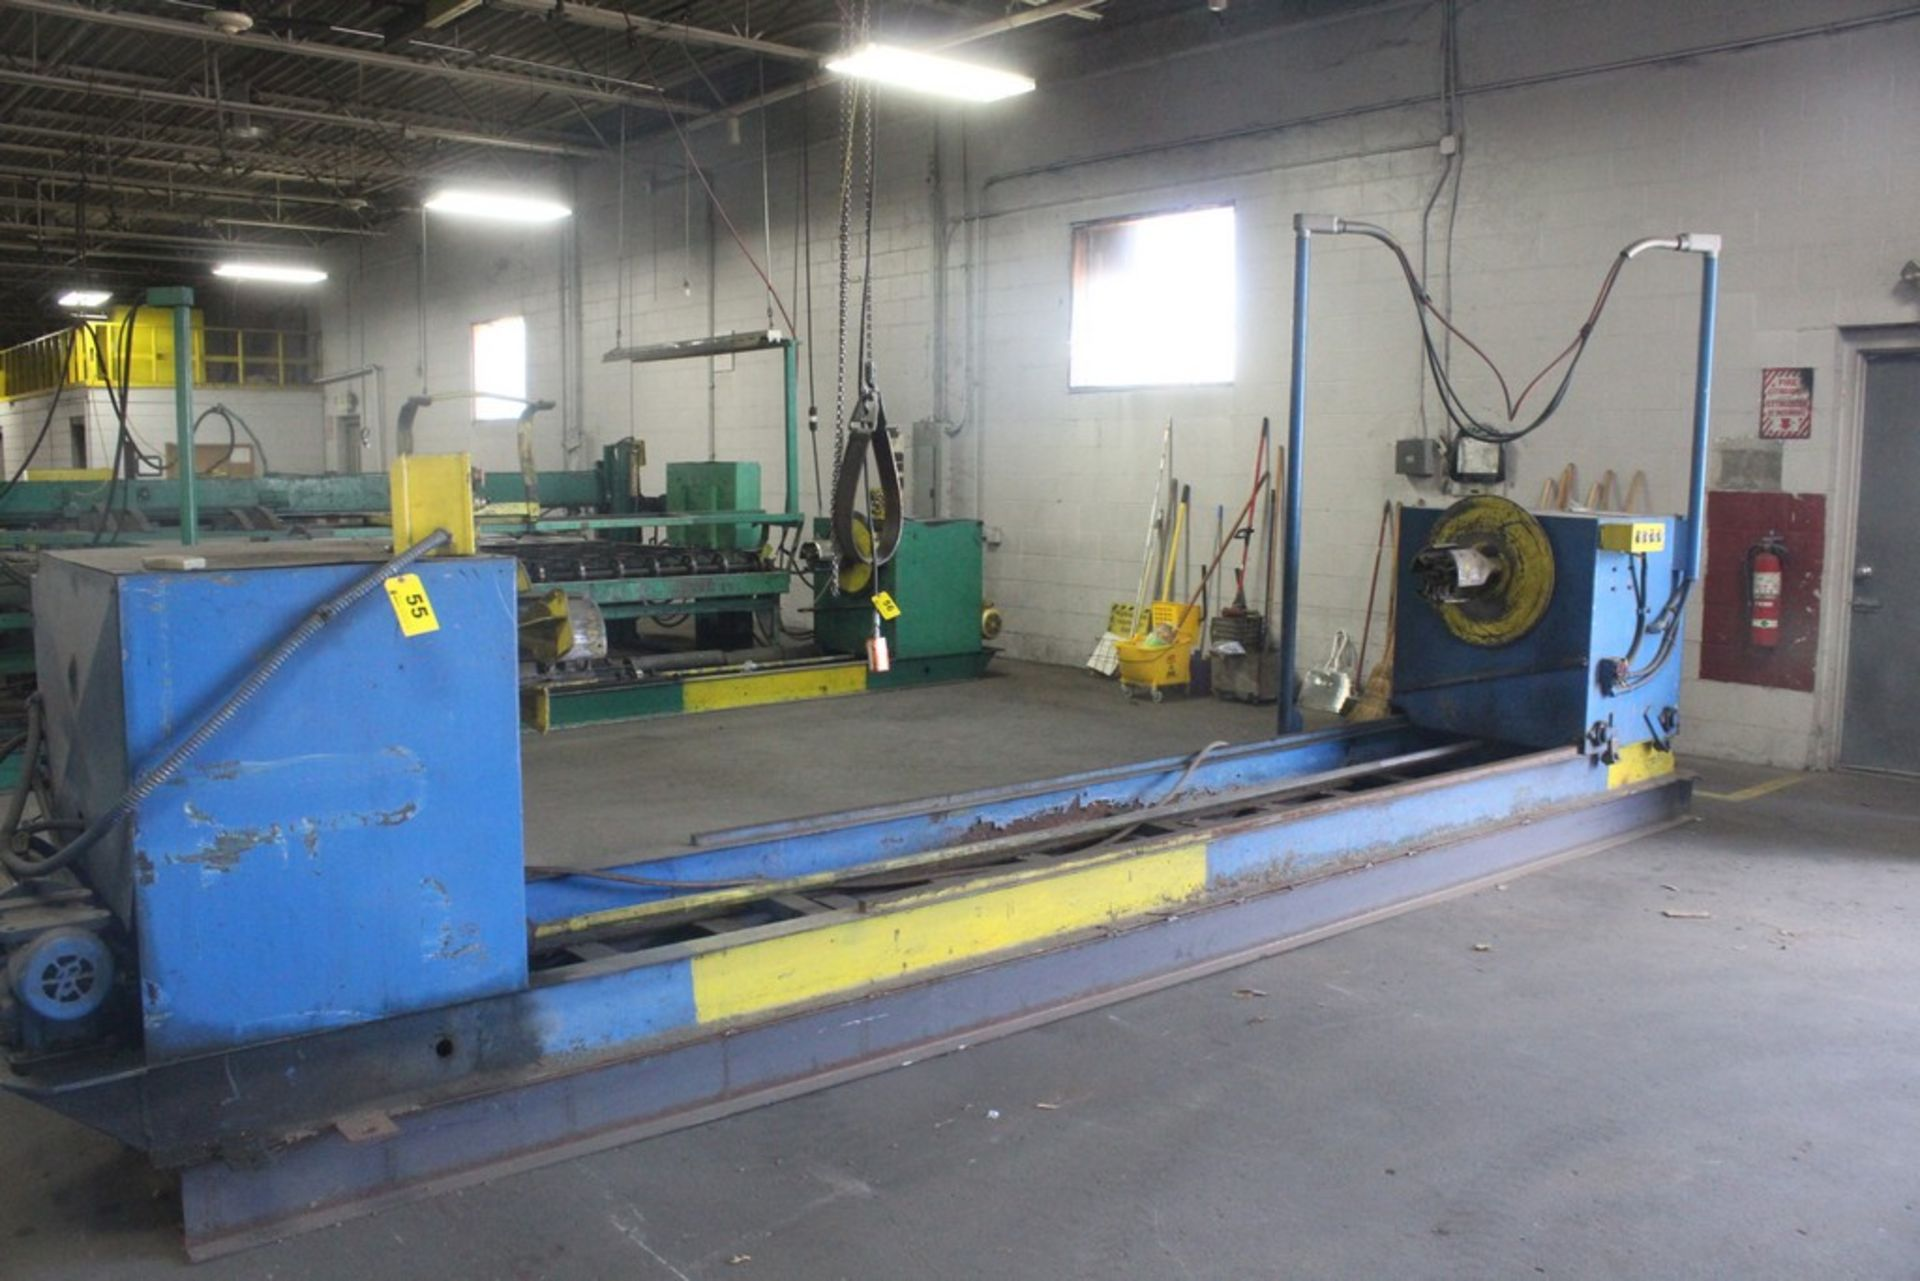 Lot 55 - 6000 Lbs Capacity Motorized Double End Uncoiler / Rewinder, Serial Number: N/A Motorized